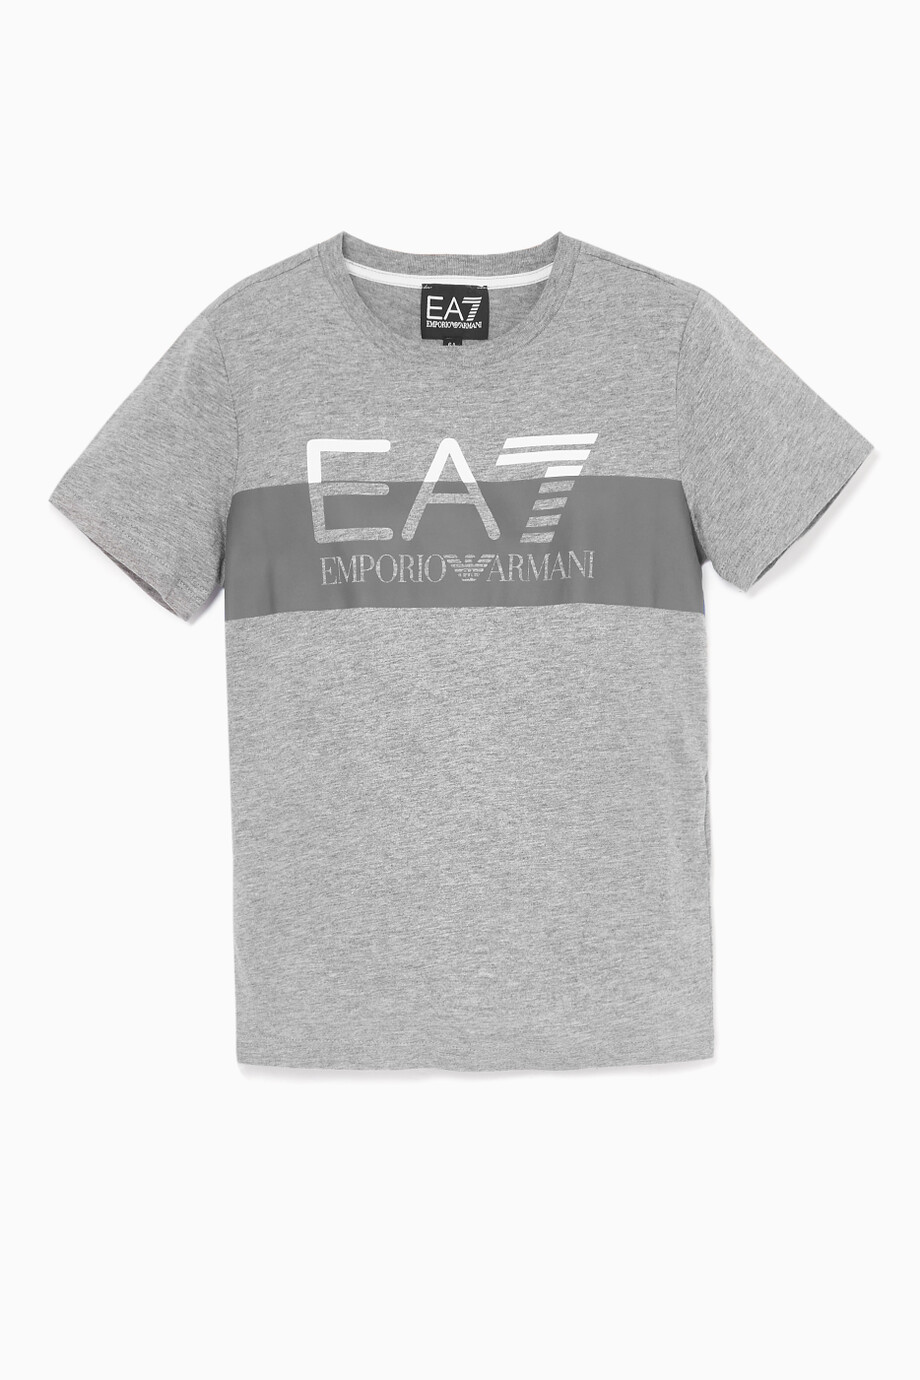 526ad24d39bb5a Shop Emporio Armani Grey Grey & Blue EA7 Logo Cotton T-Shirt for ...